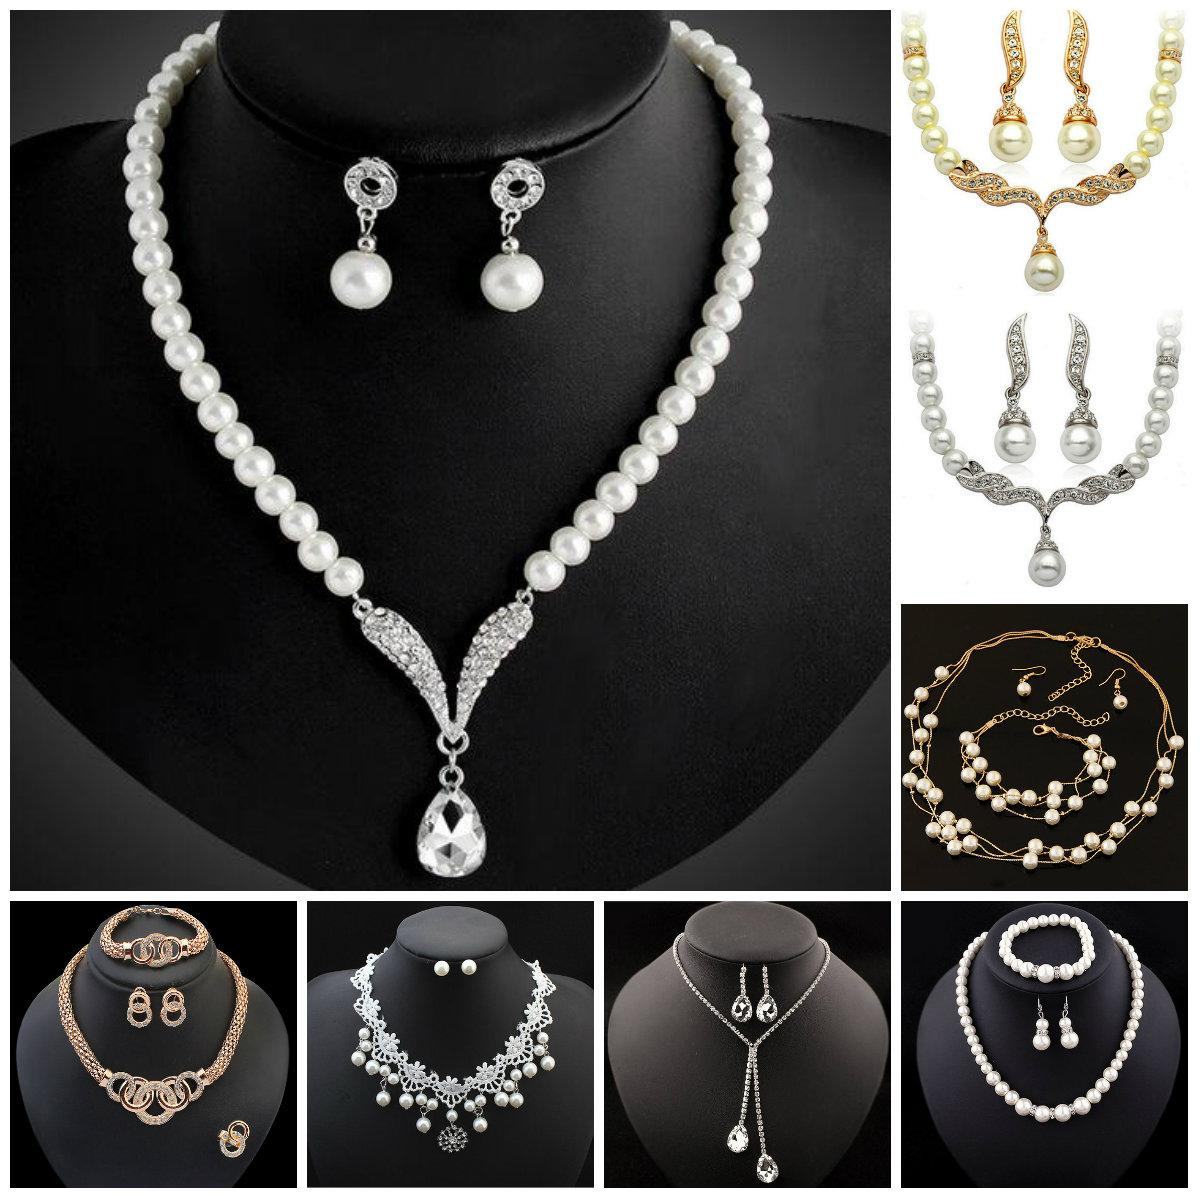 2019 Bridesmaid Jewelry Set For Wedding Crystal Rhinestone Tear Drop Shaped Fashion  Jewelry Pearl Necklace Pendants Earring Party Jewelry Sets From Huierjew ... f8a6441d7f37